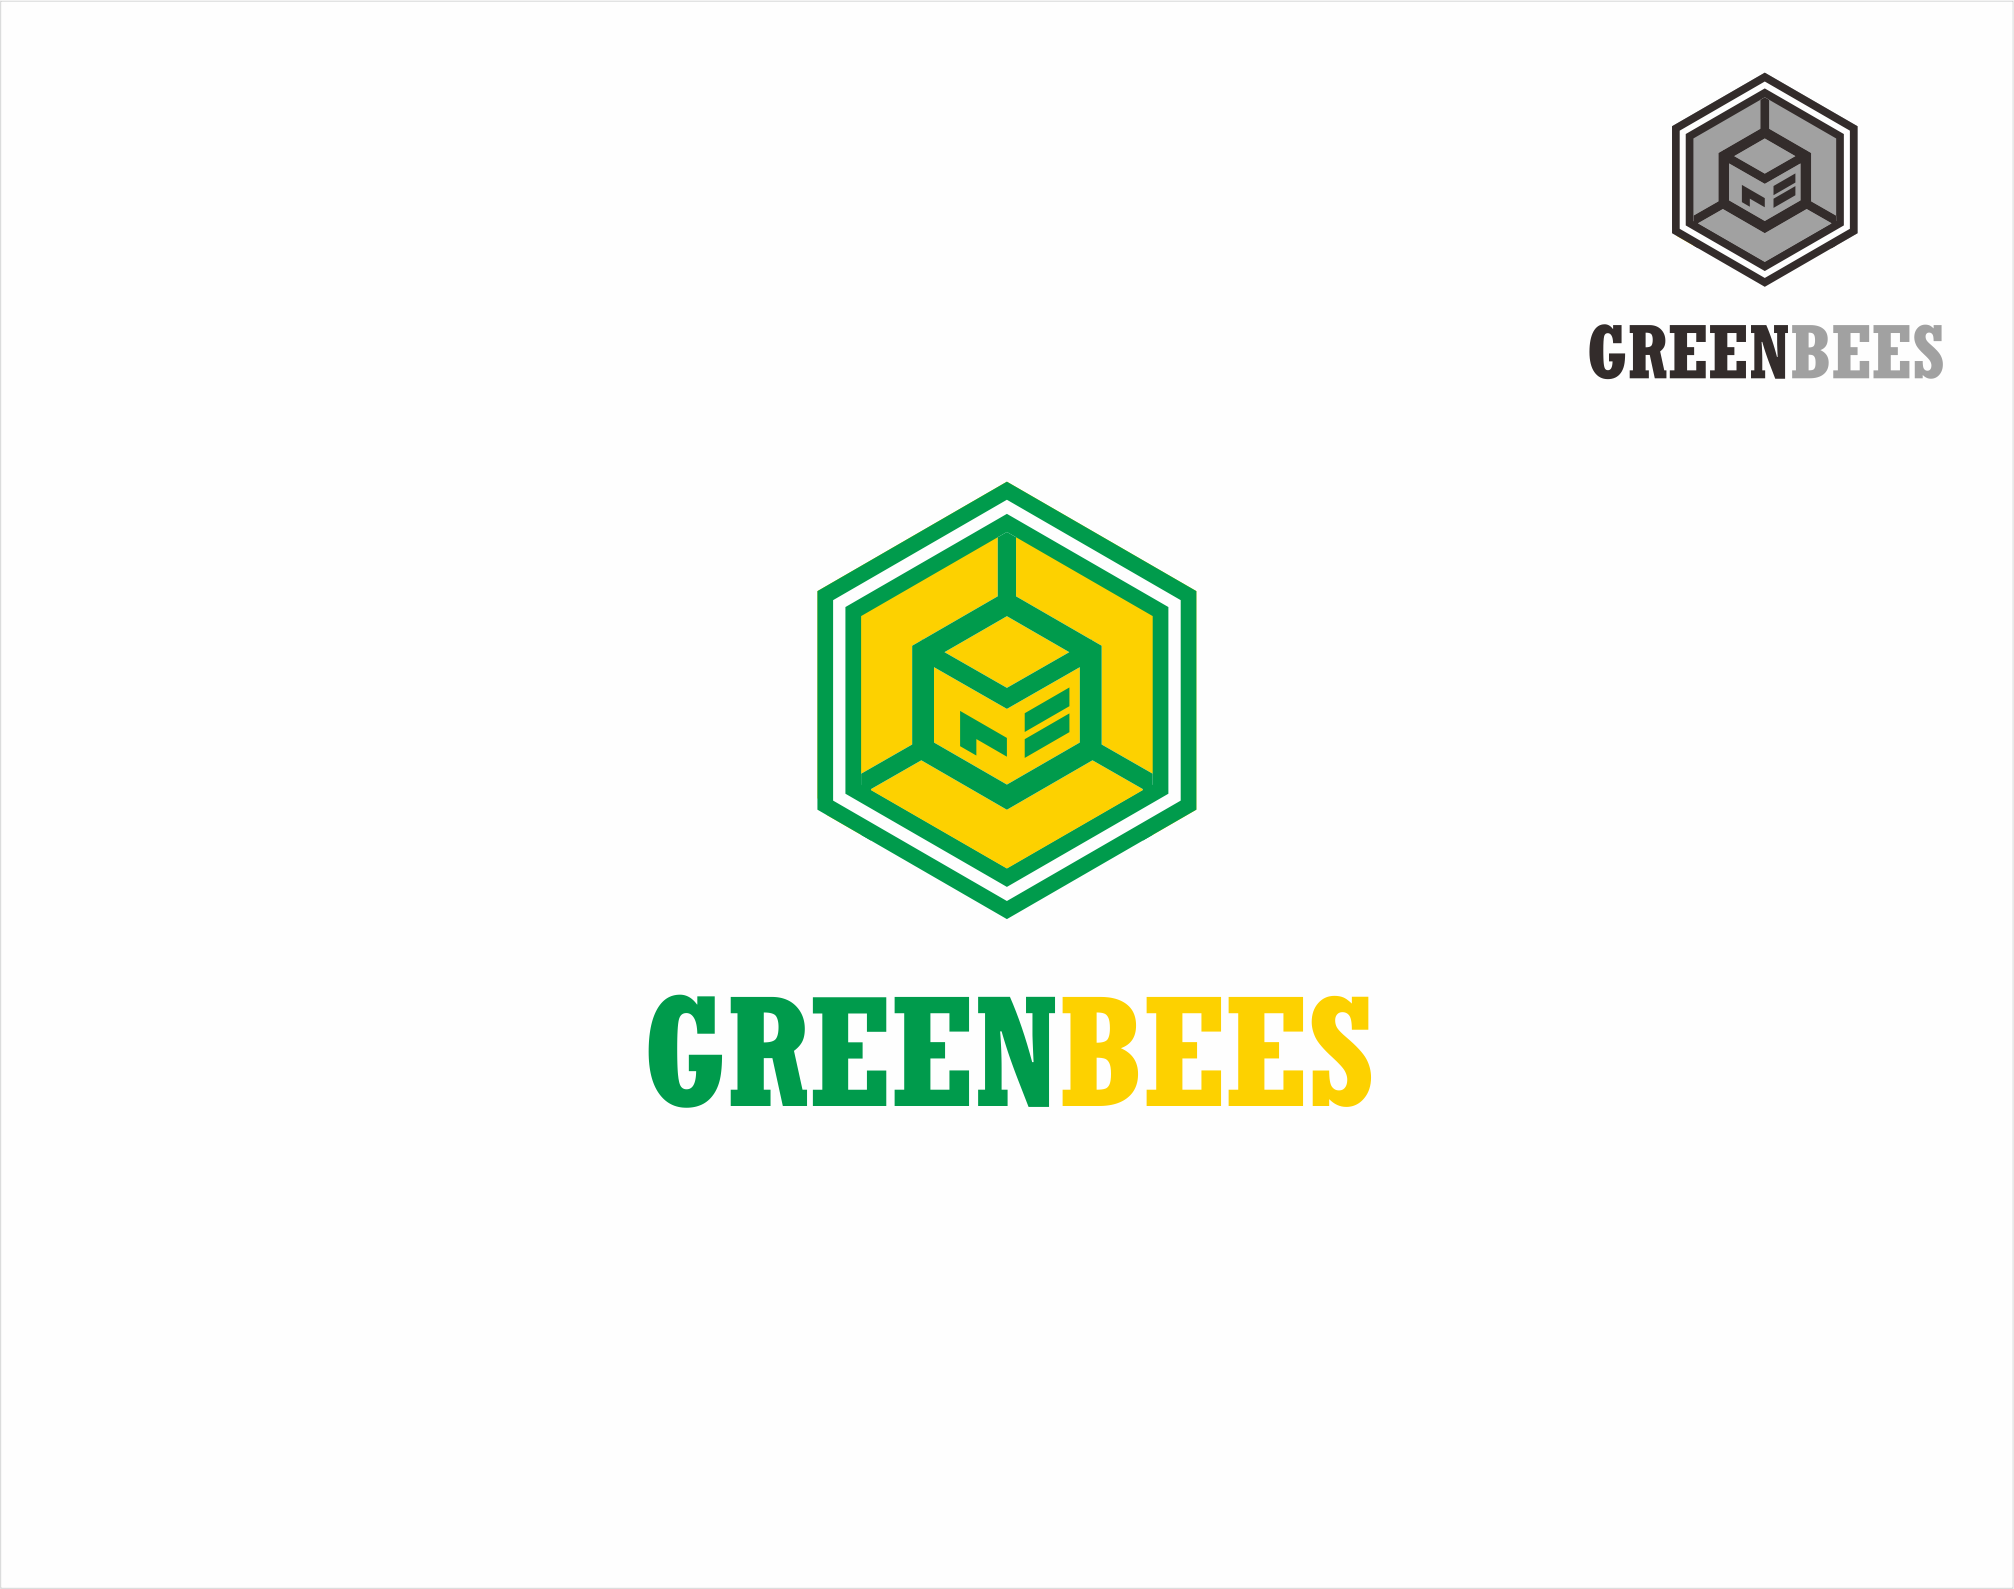 Logo Design by Armada Jamaluddin - Entry No. 364 in the Logo Design Contest Greenbees Logo Design.